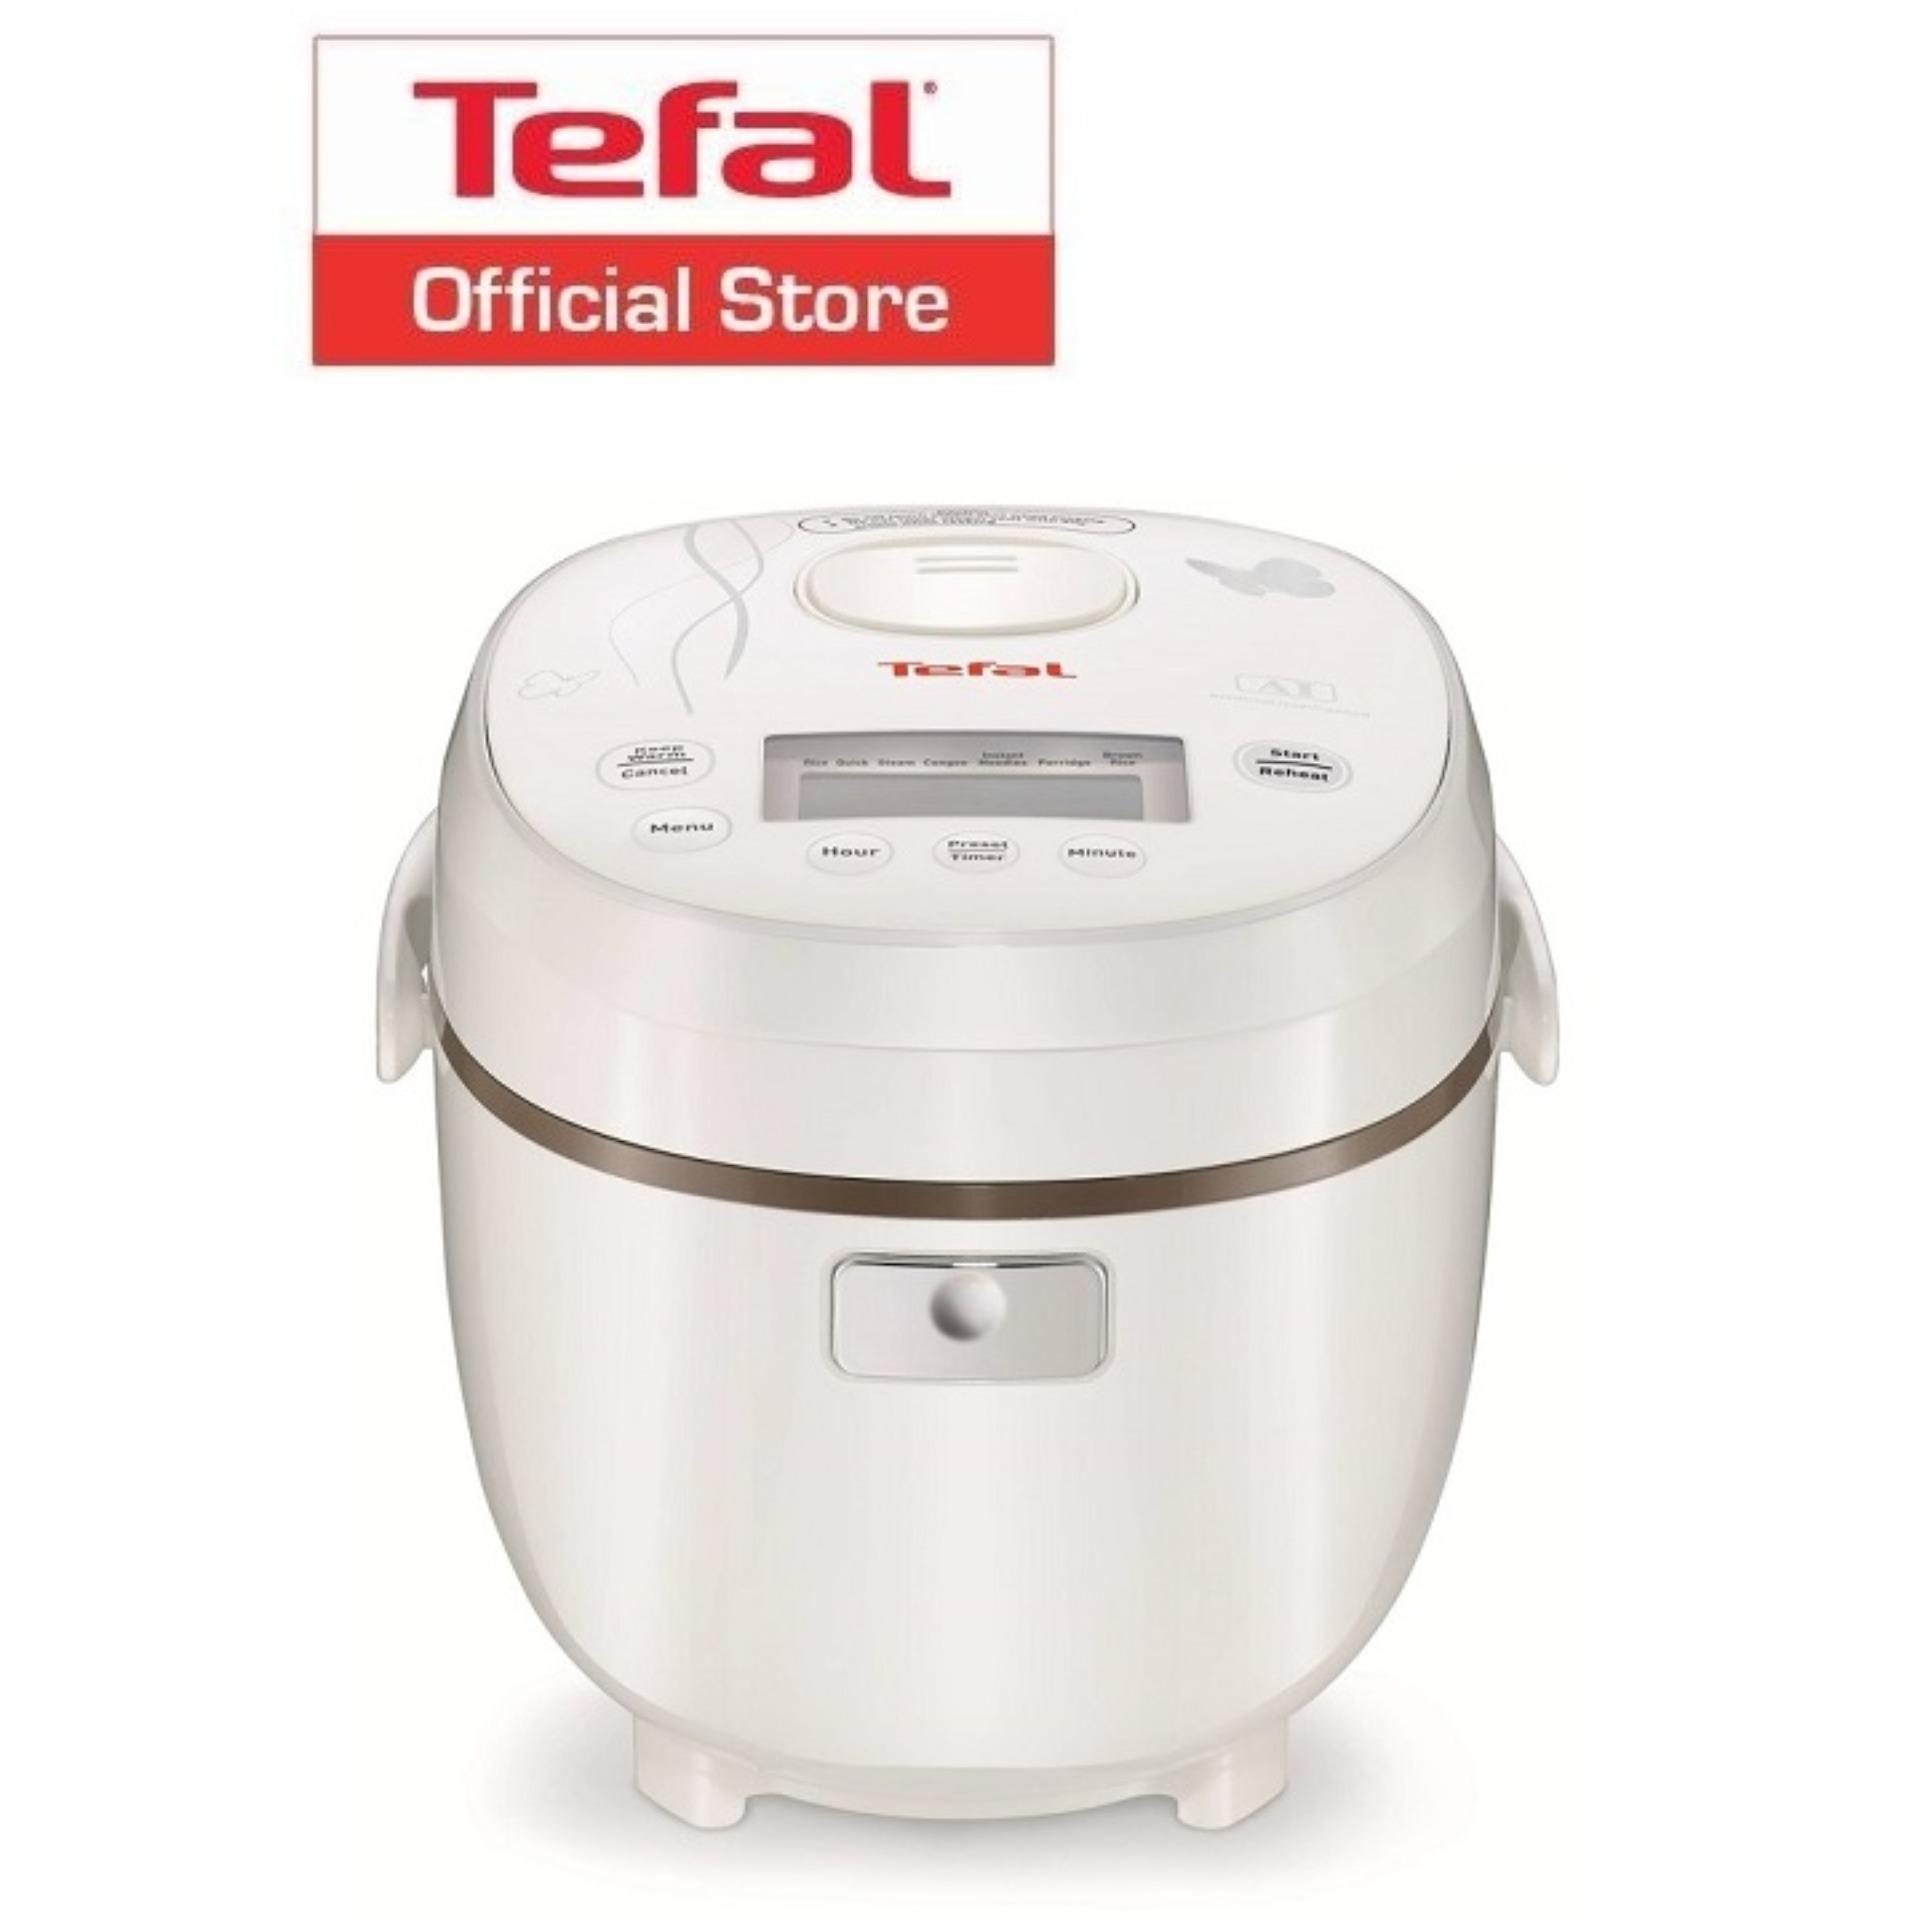 How To Get Tefal Mini Fuzzy Logic Rice Cooker Rk5001